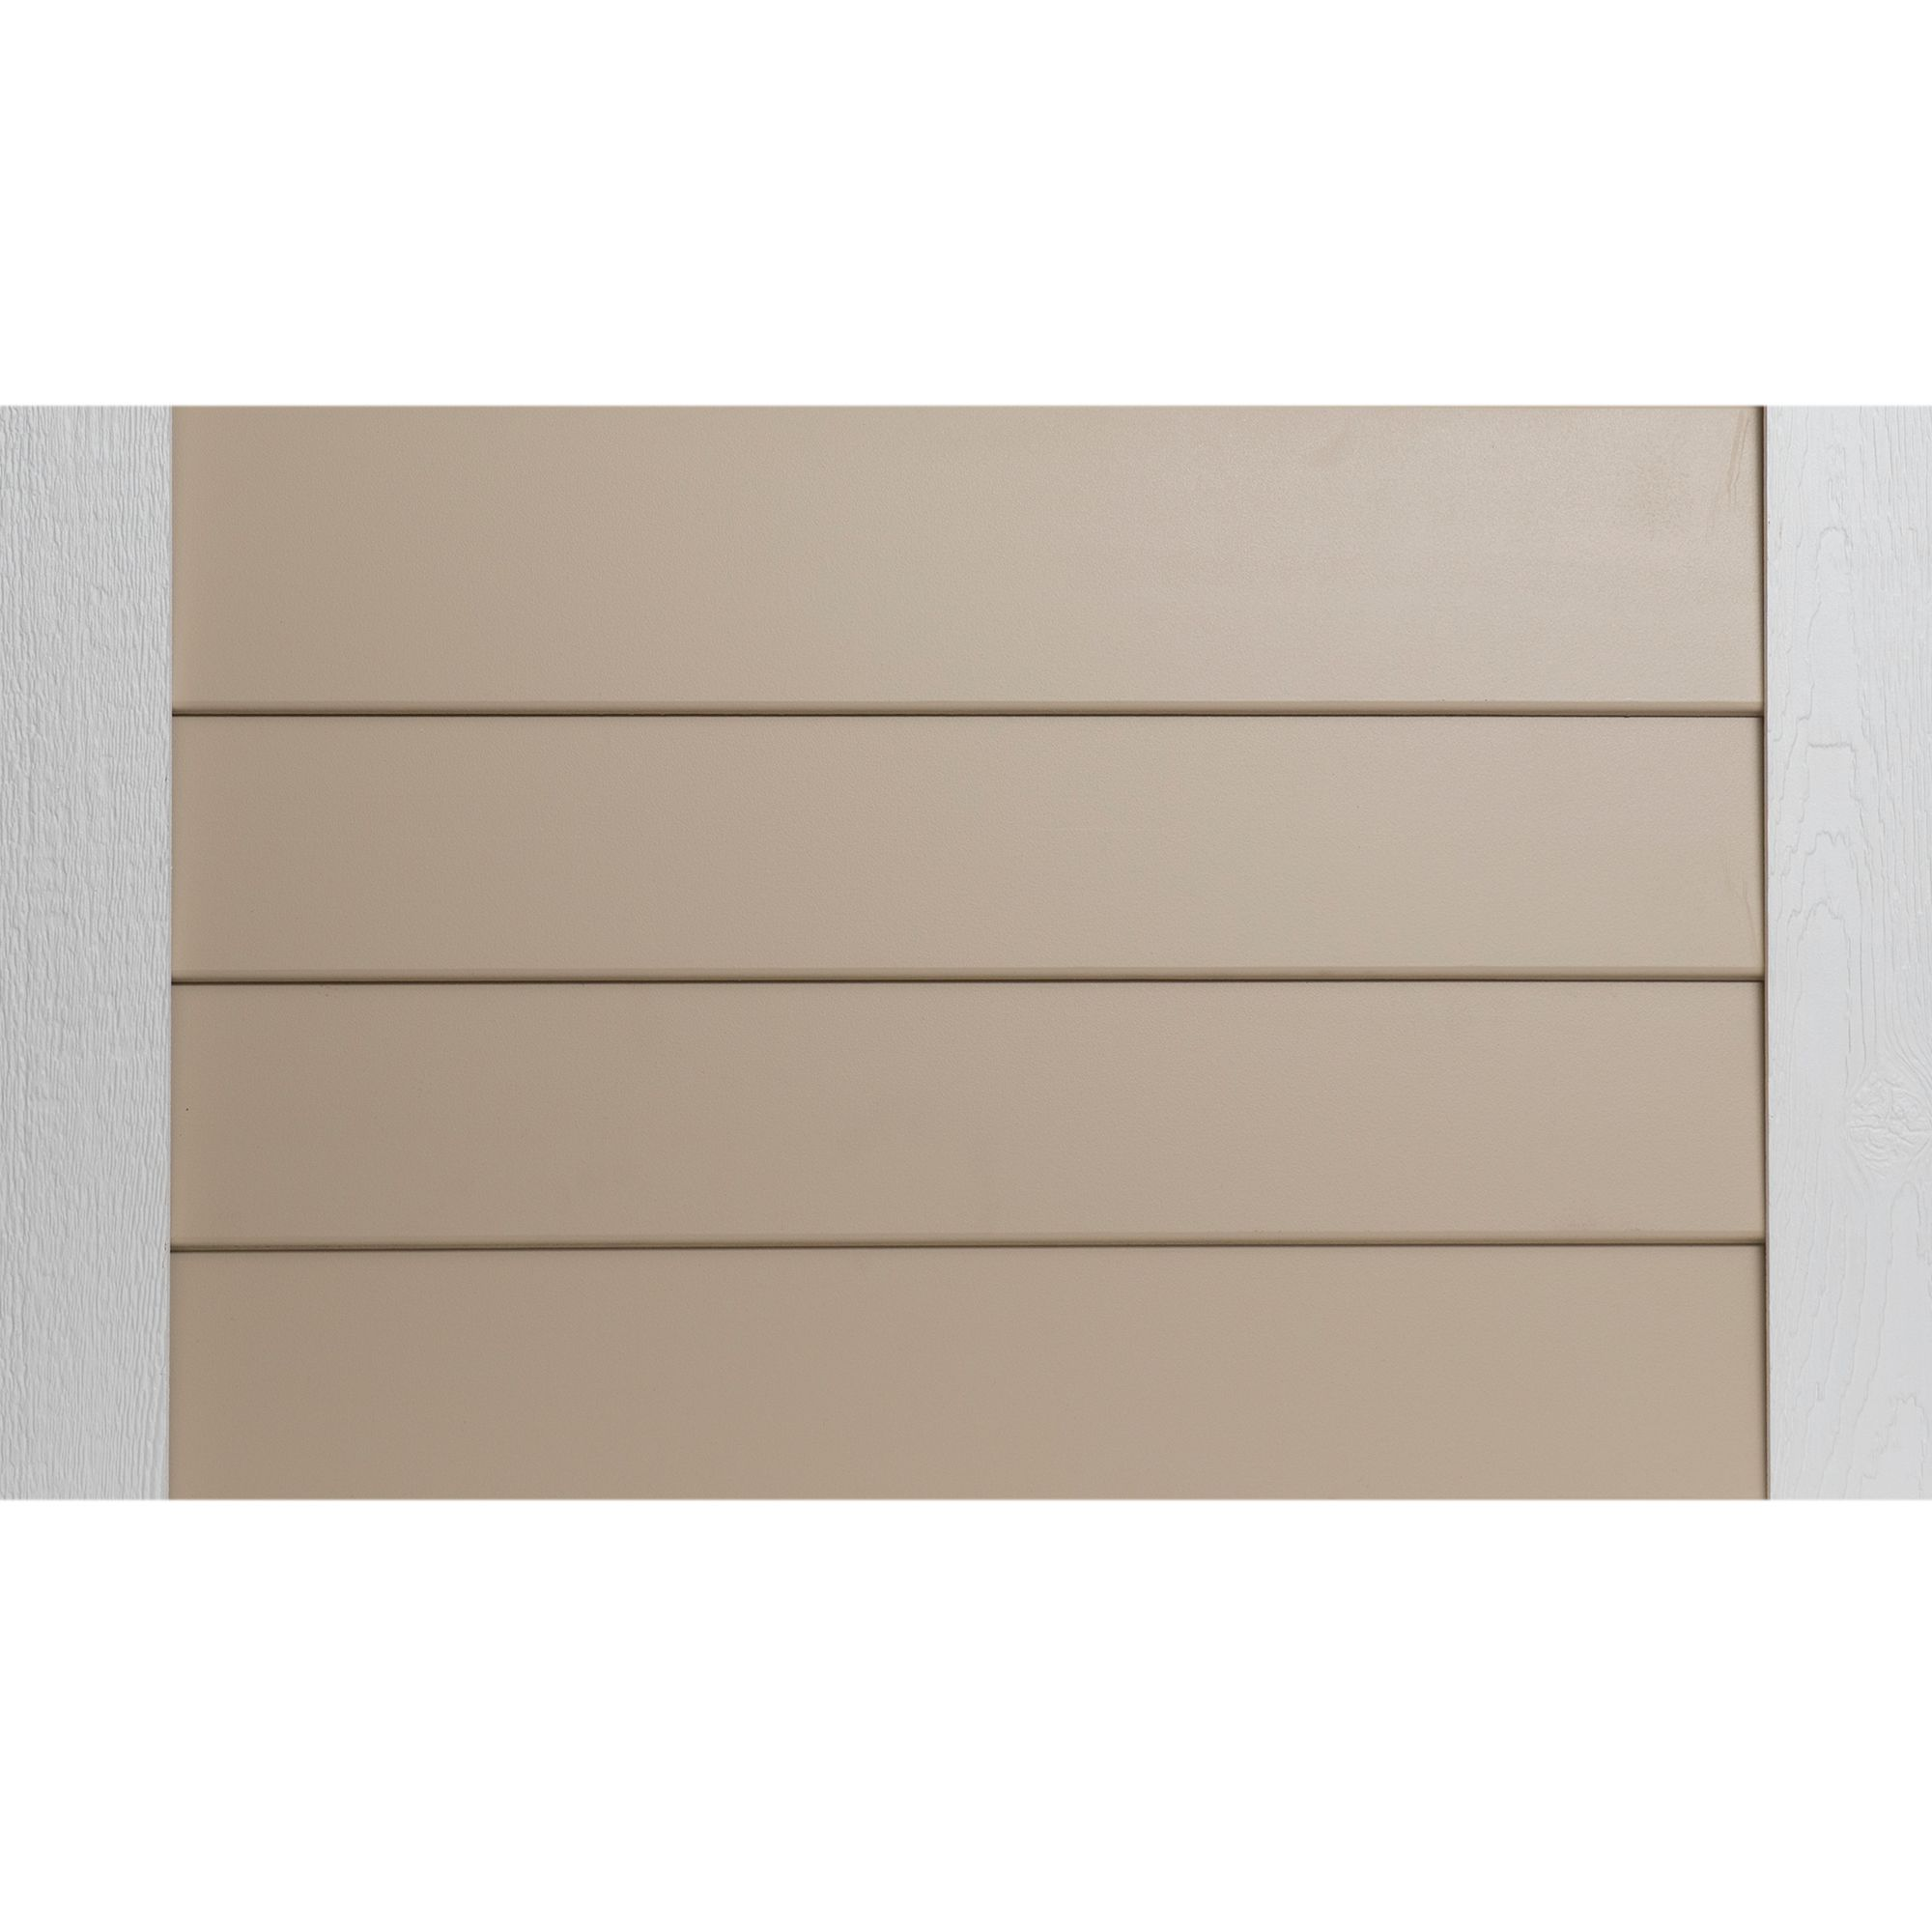 Eco Side Siding Options Engineered Wood Siding Wood Siding Siding Colors